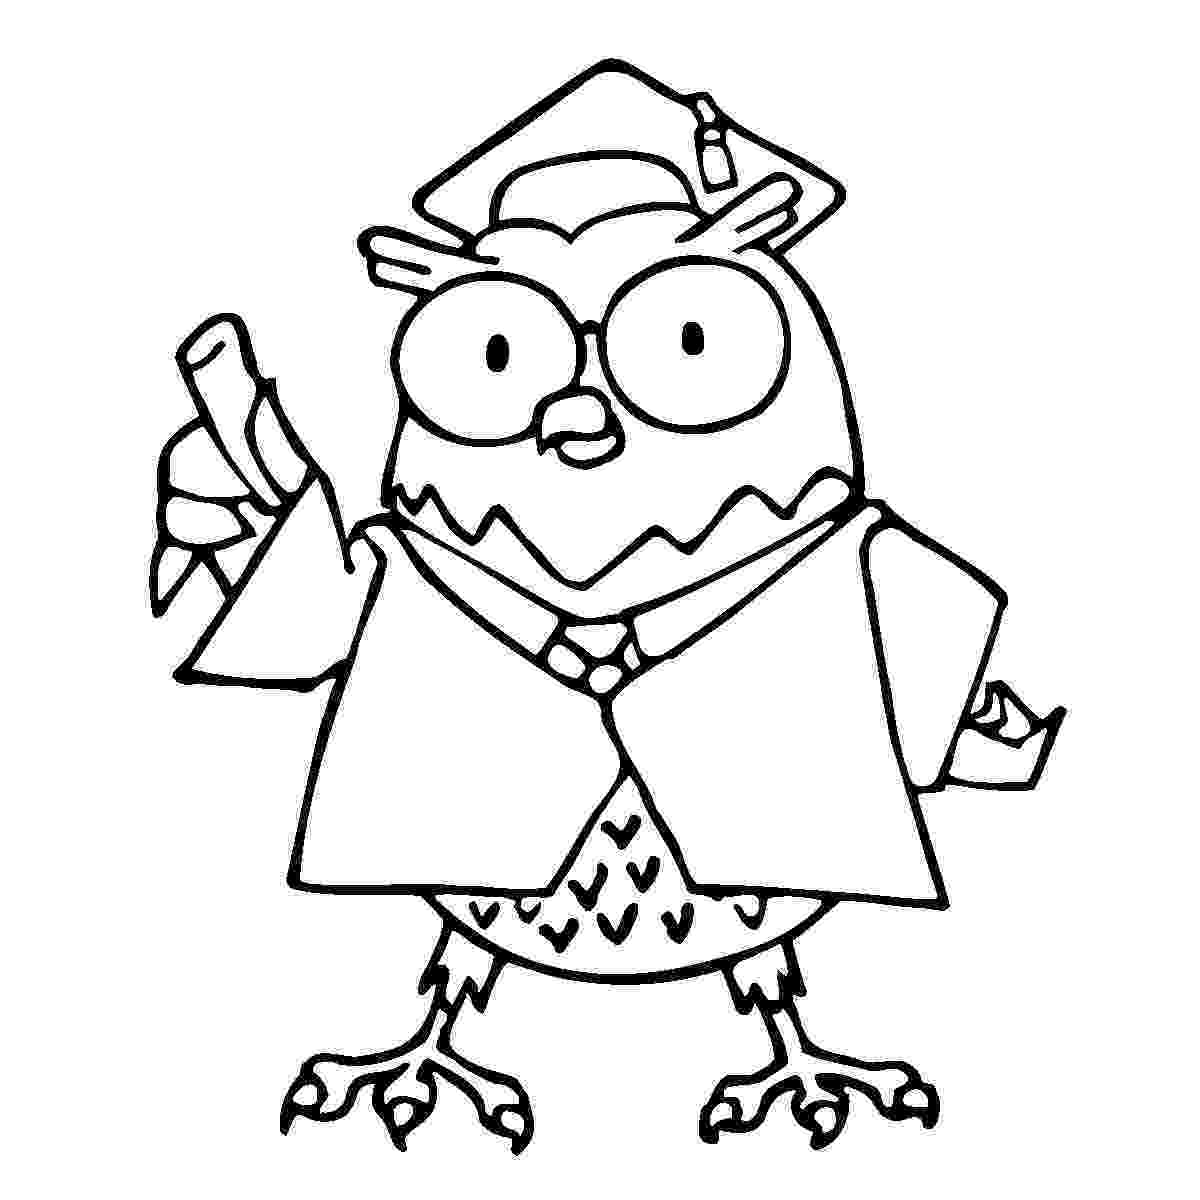 owl cartoon coloring pages f owls colouring pages page 3 pages coloring owl cartoon